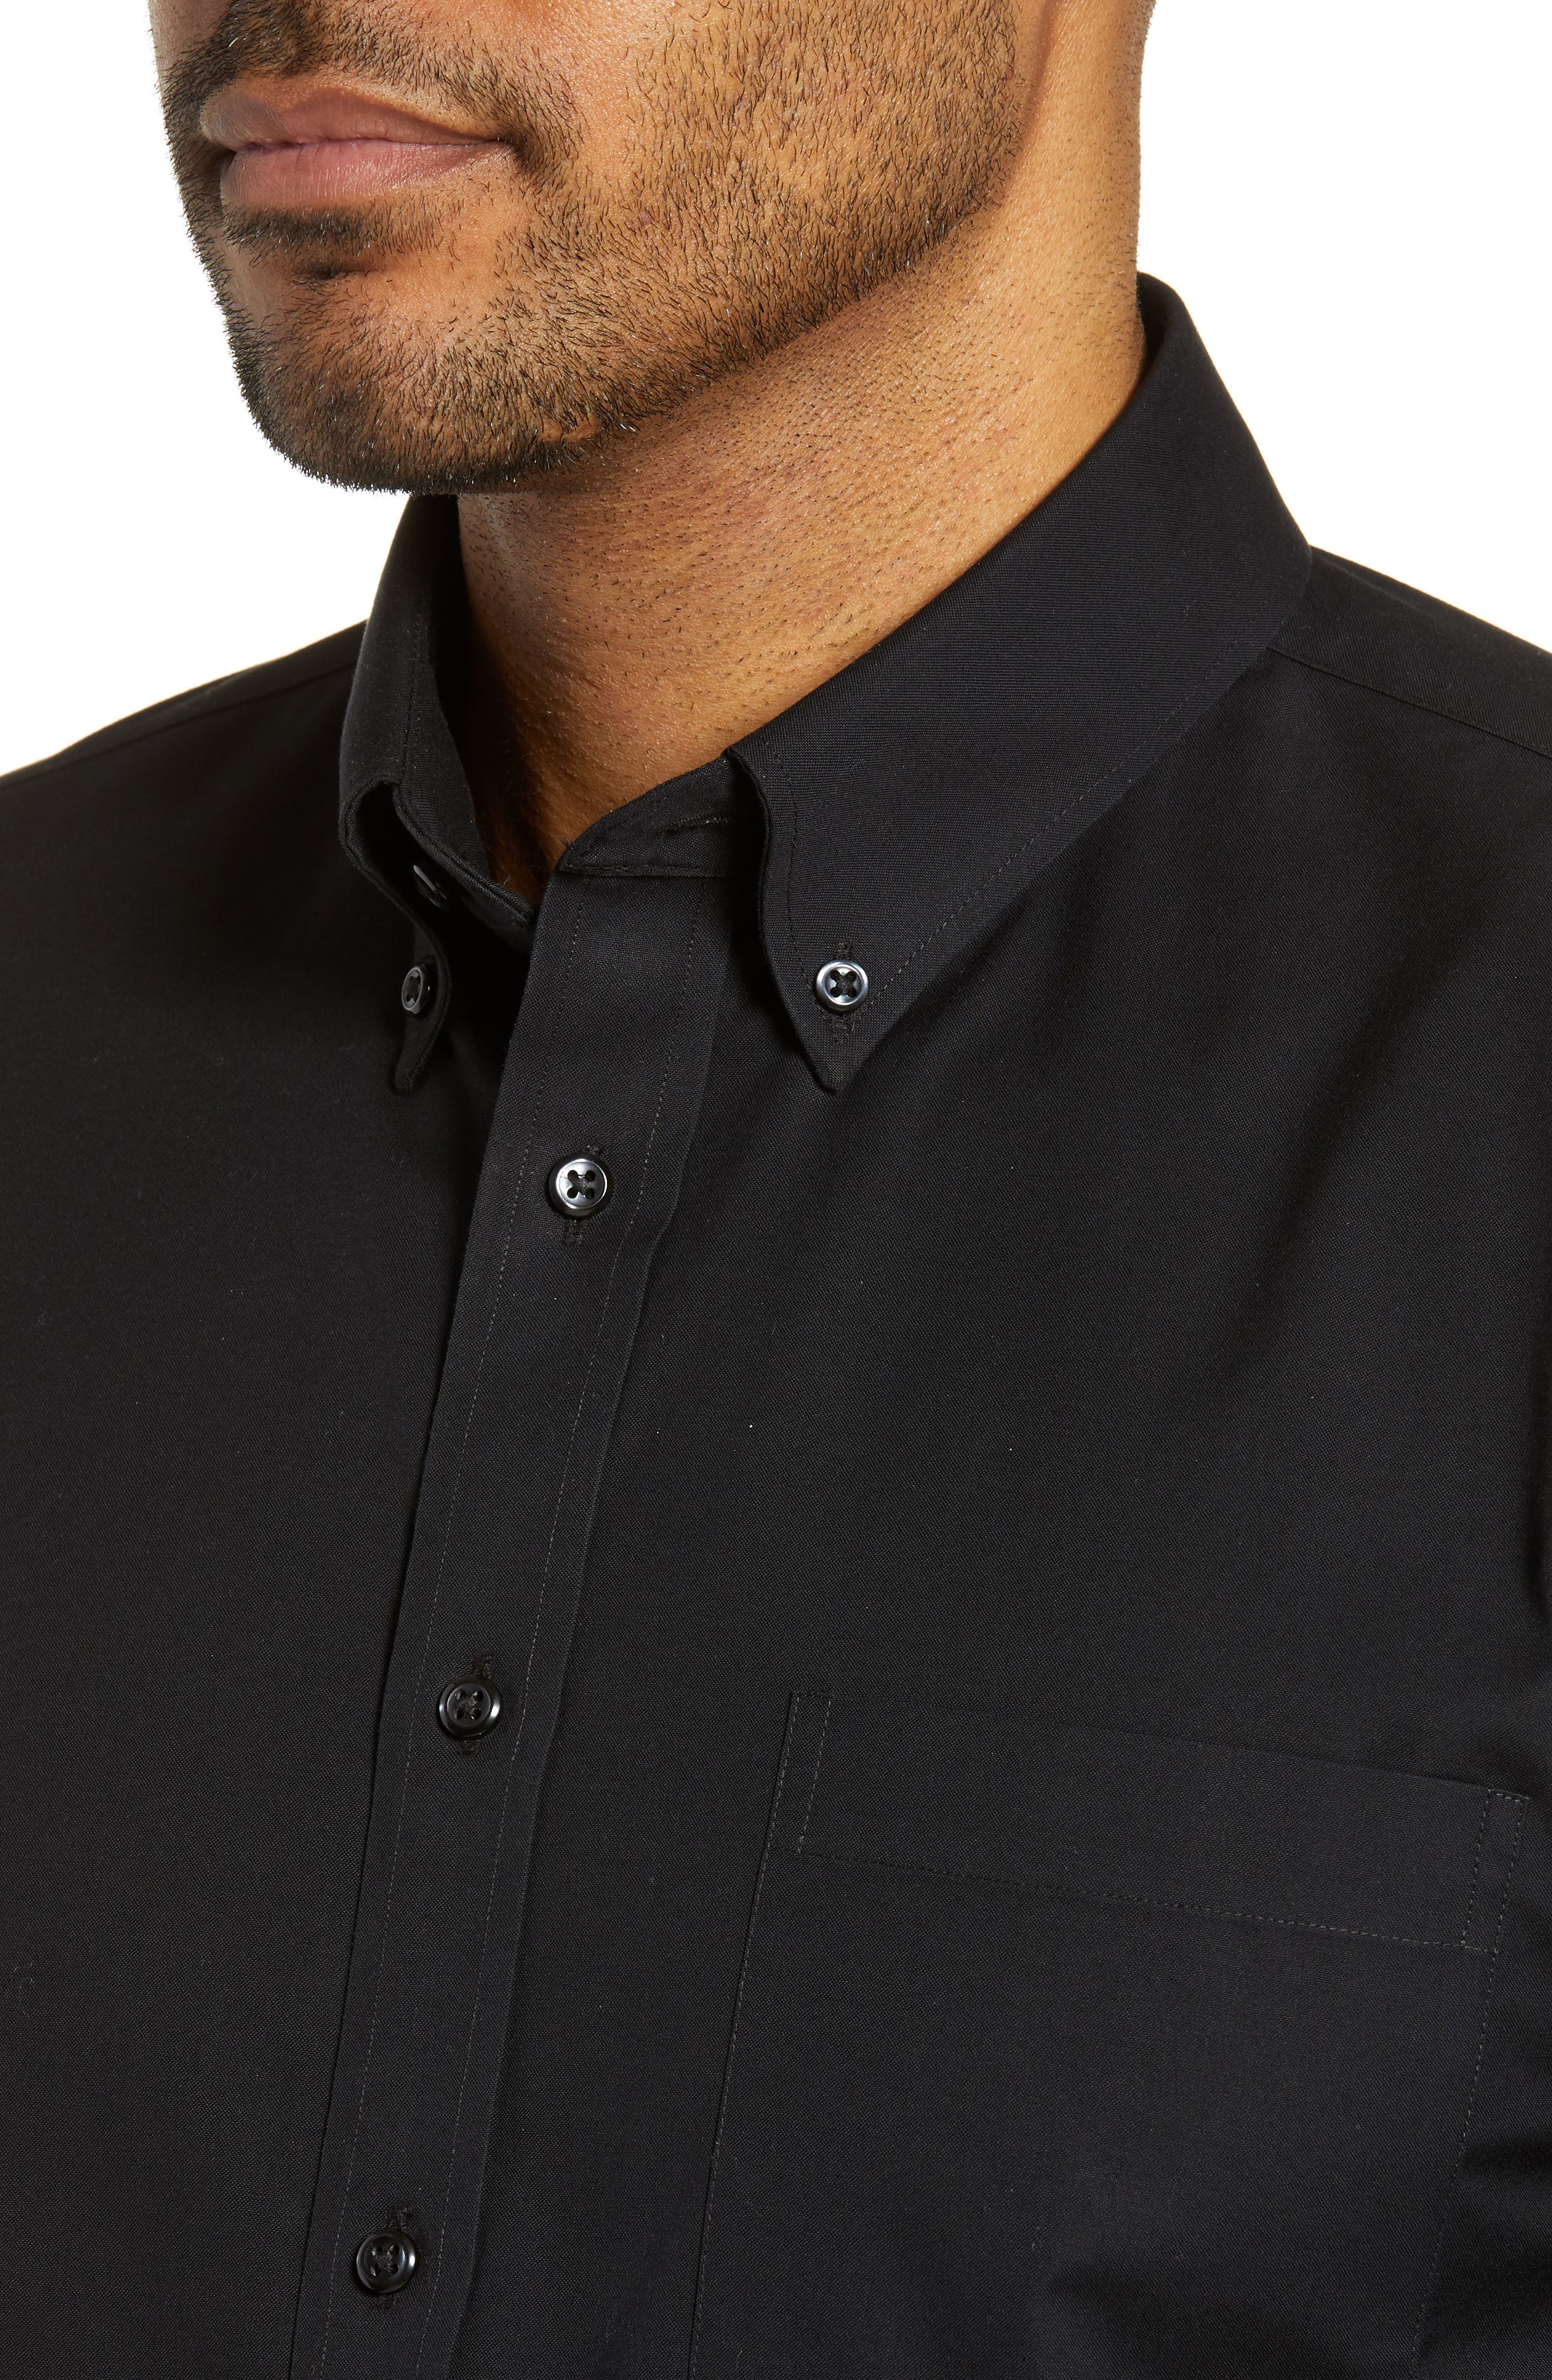 NORDSTROM MEN'S SHOP, Smartcare<sup>™</sup> Traditional Fit Pinpoint Dress Shirt, Alternate thumbnail 2, color, BLACK ROCK